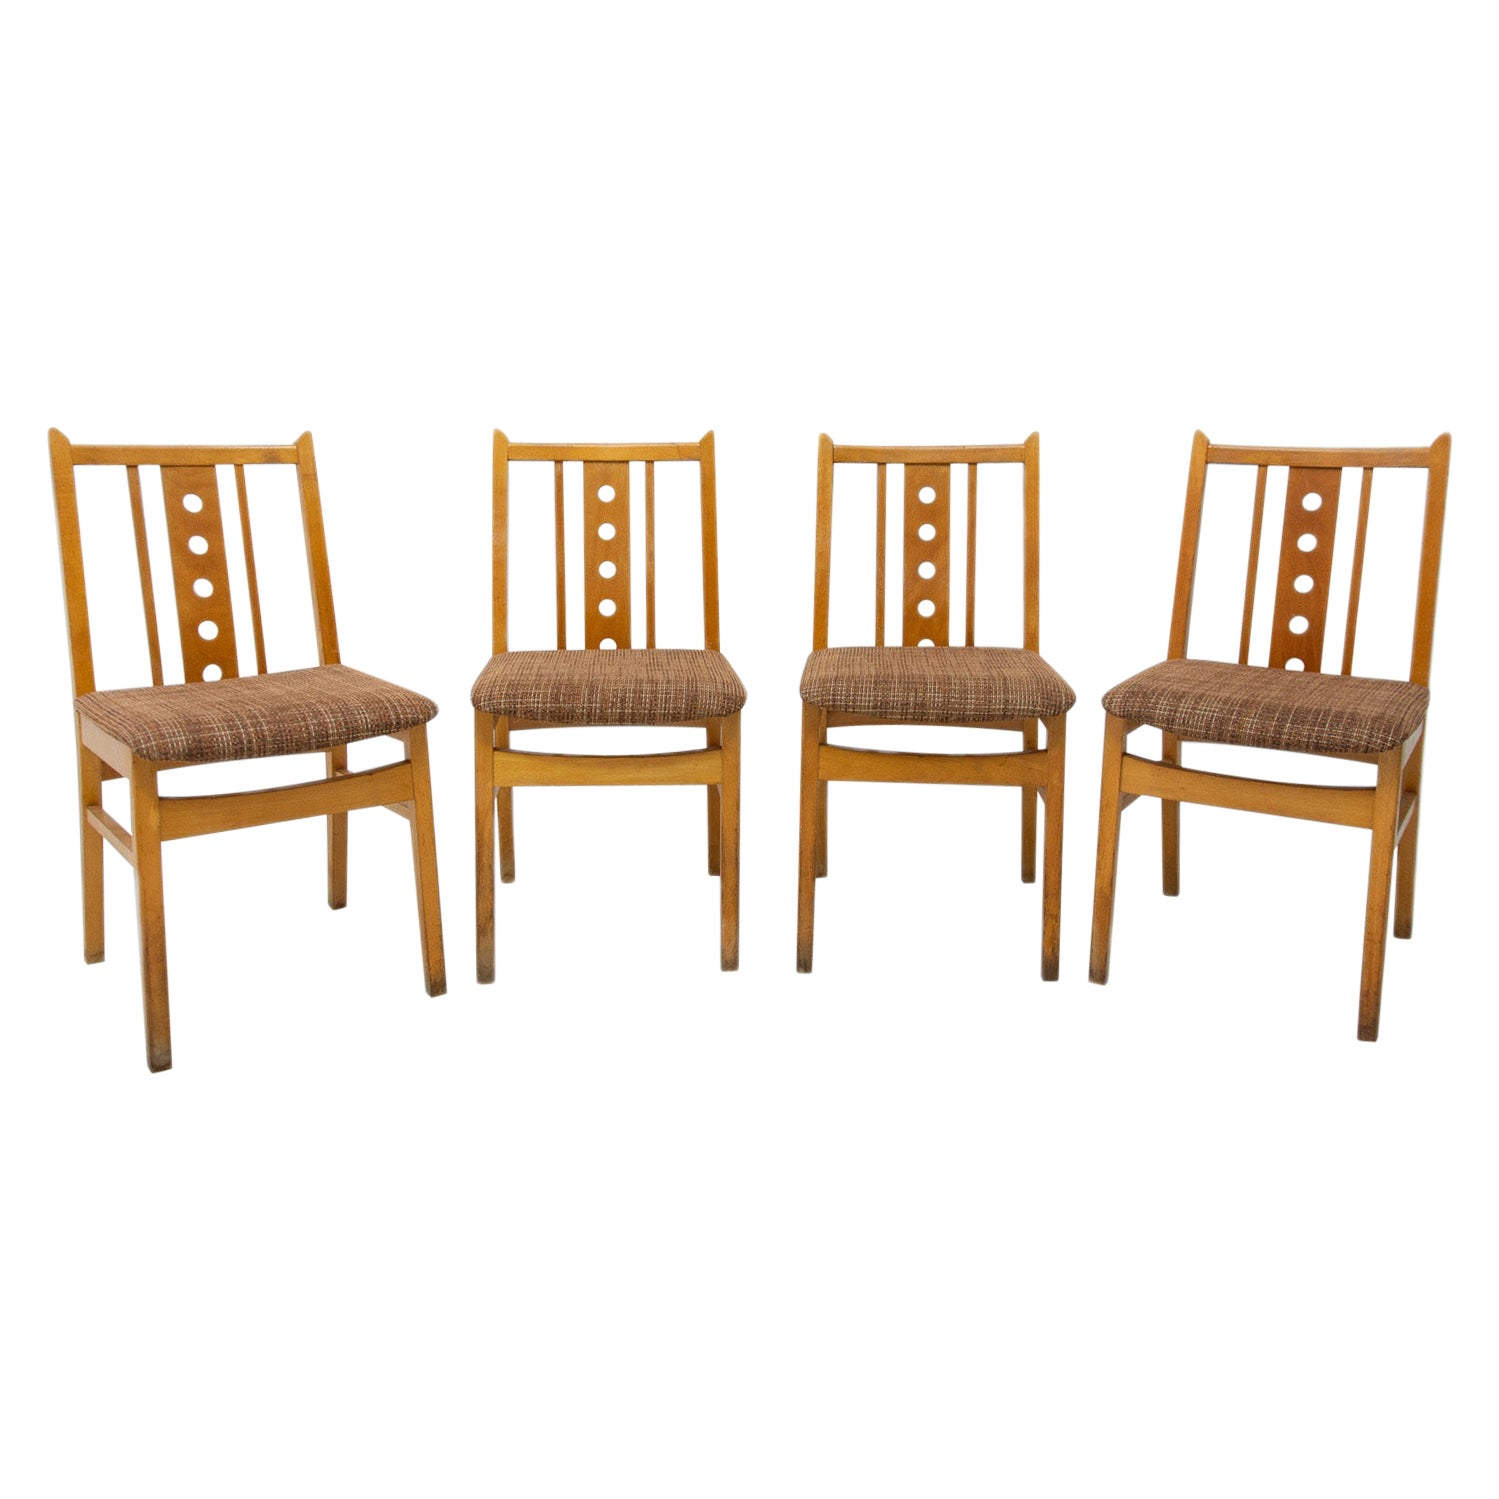 Midcentury Dining Chairs, 1960s, Set of 4